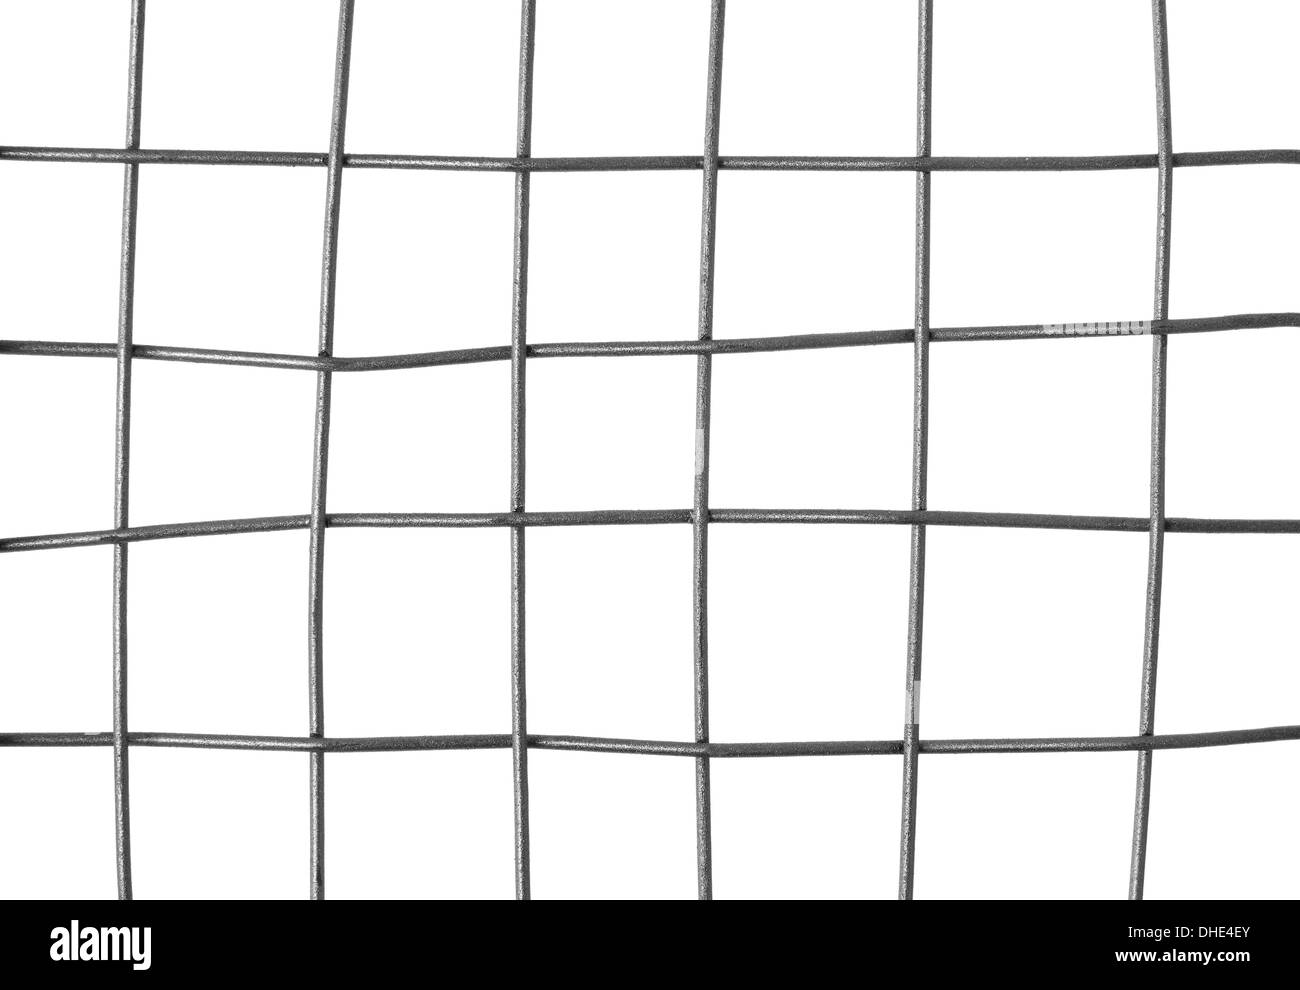 Close-up of a metal grid, isolated on white background. - Stock Image